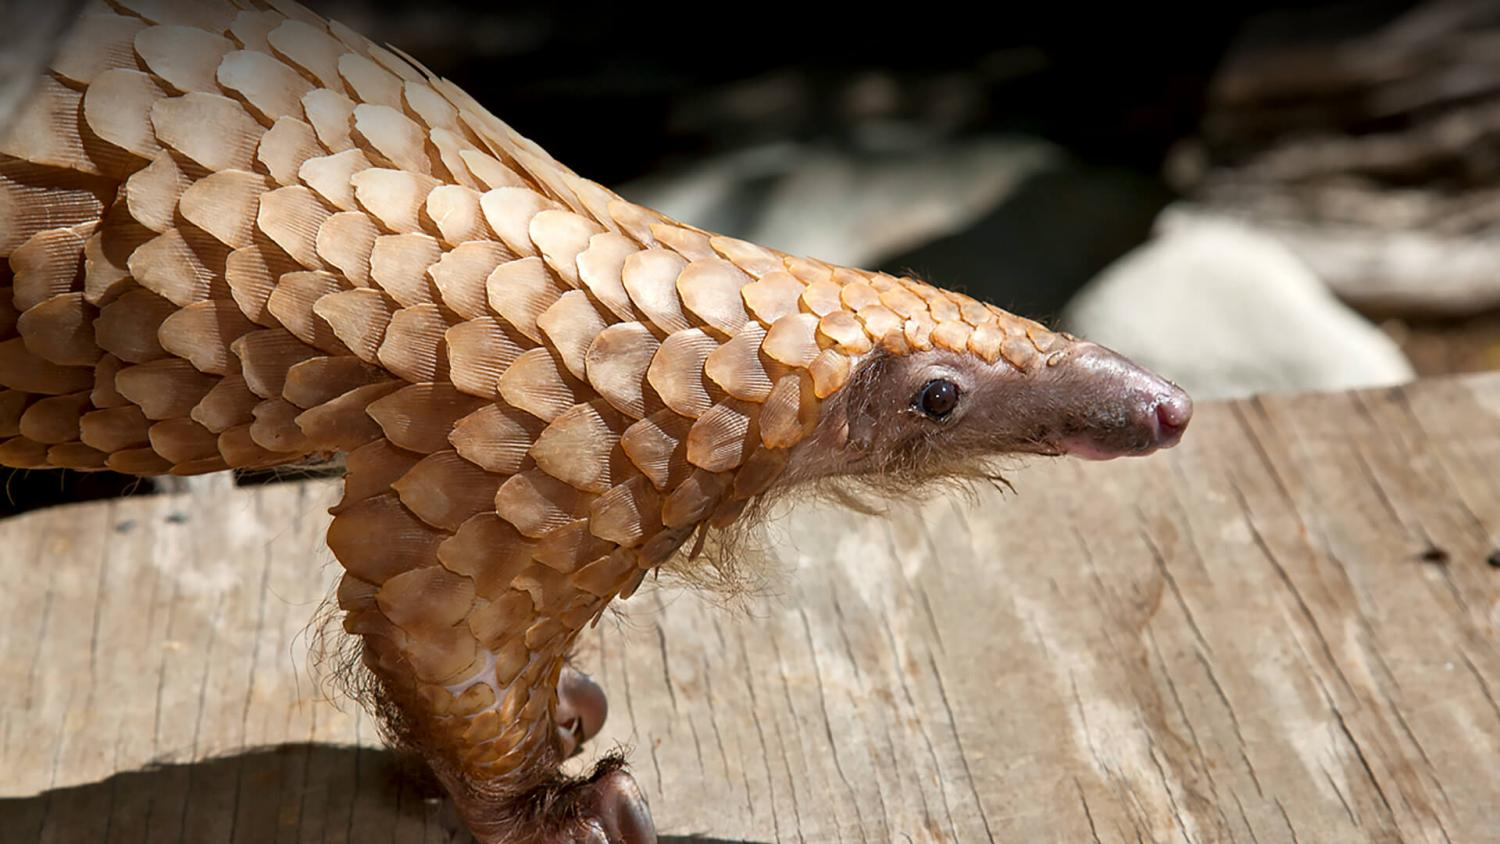 The tree pangolin is one cute and fascinating animal!